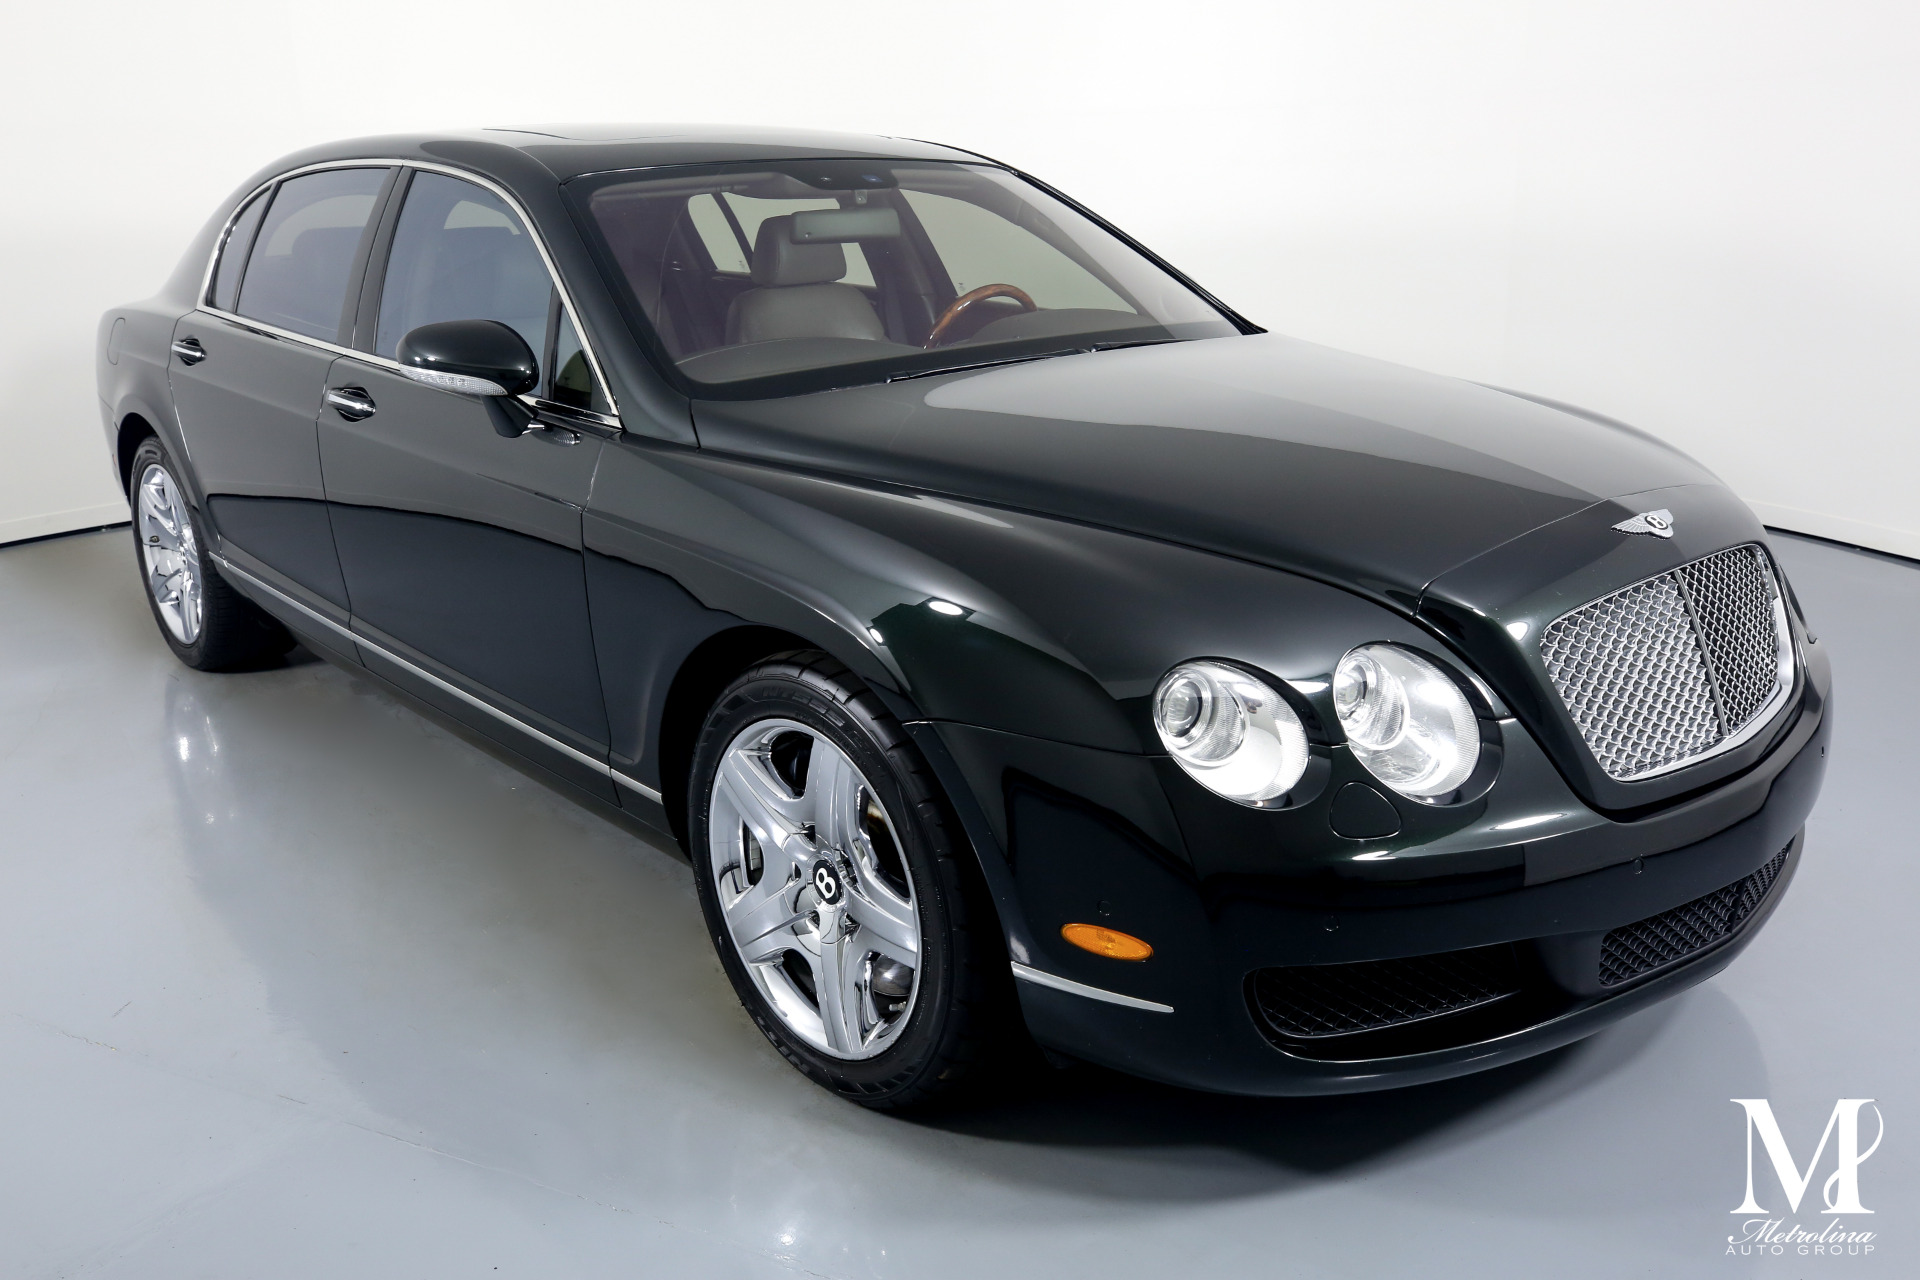 Used 2006 Bentley Continental Flying Spur for sale $37,996 at Metrolina Auto Group in Charlotte NC 28217 - 2